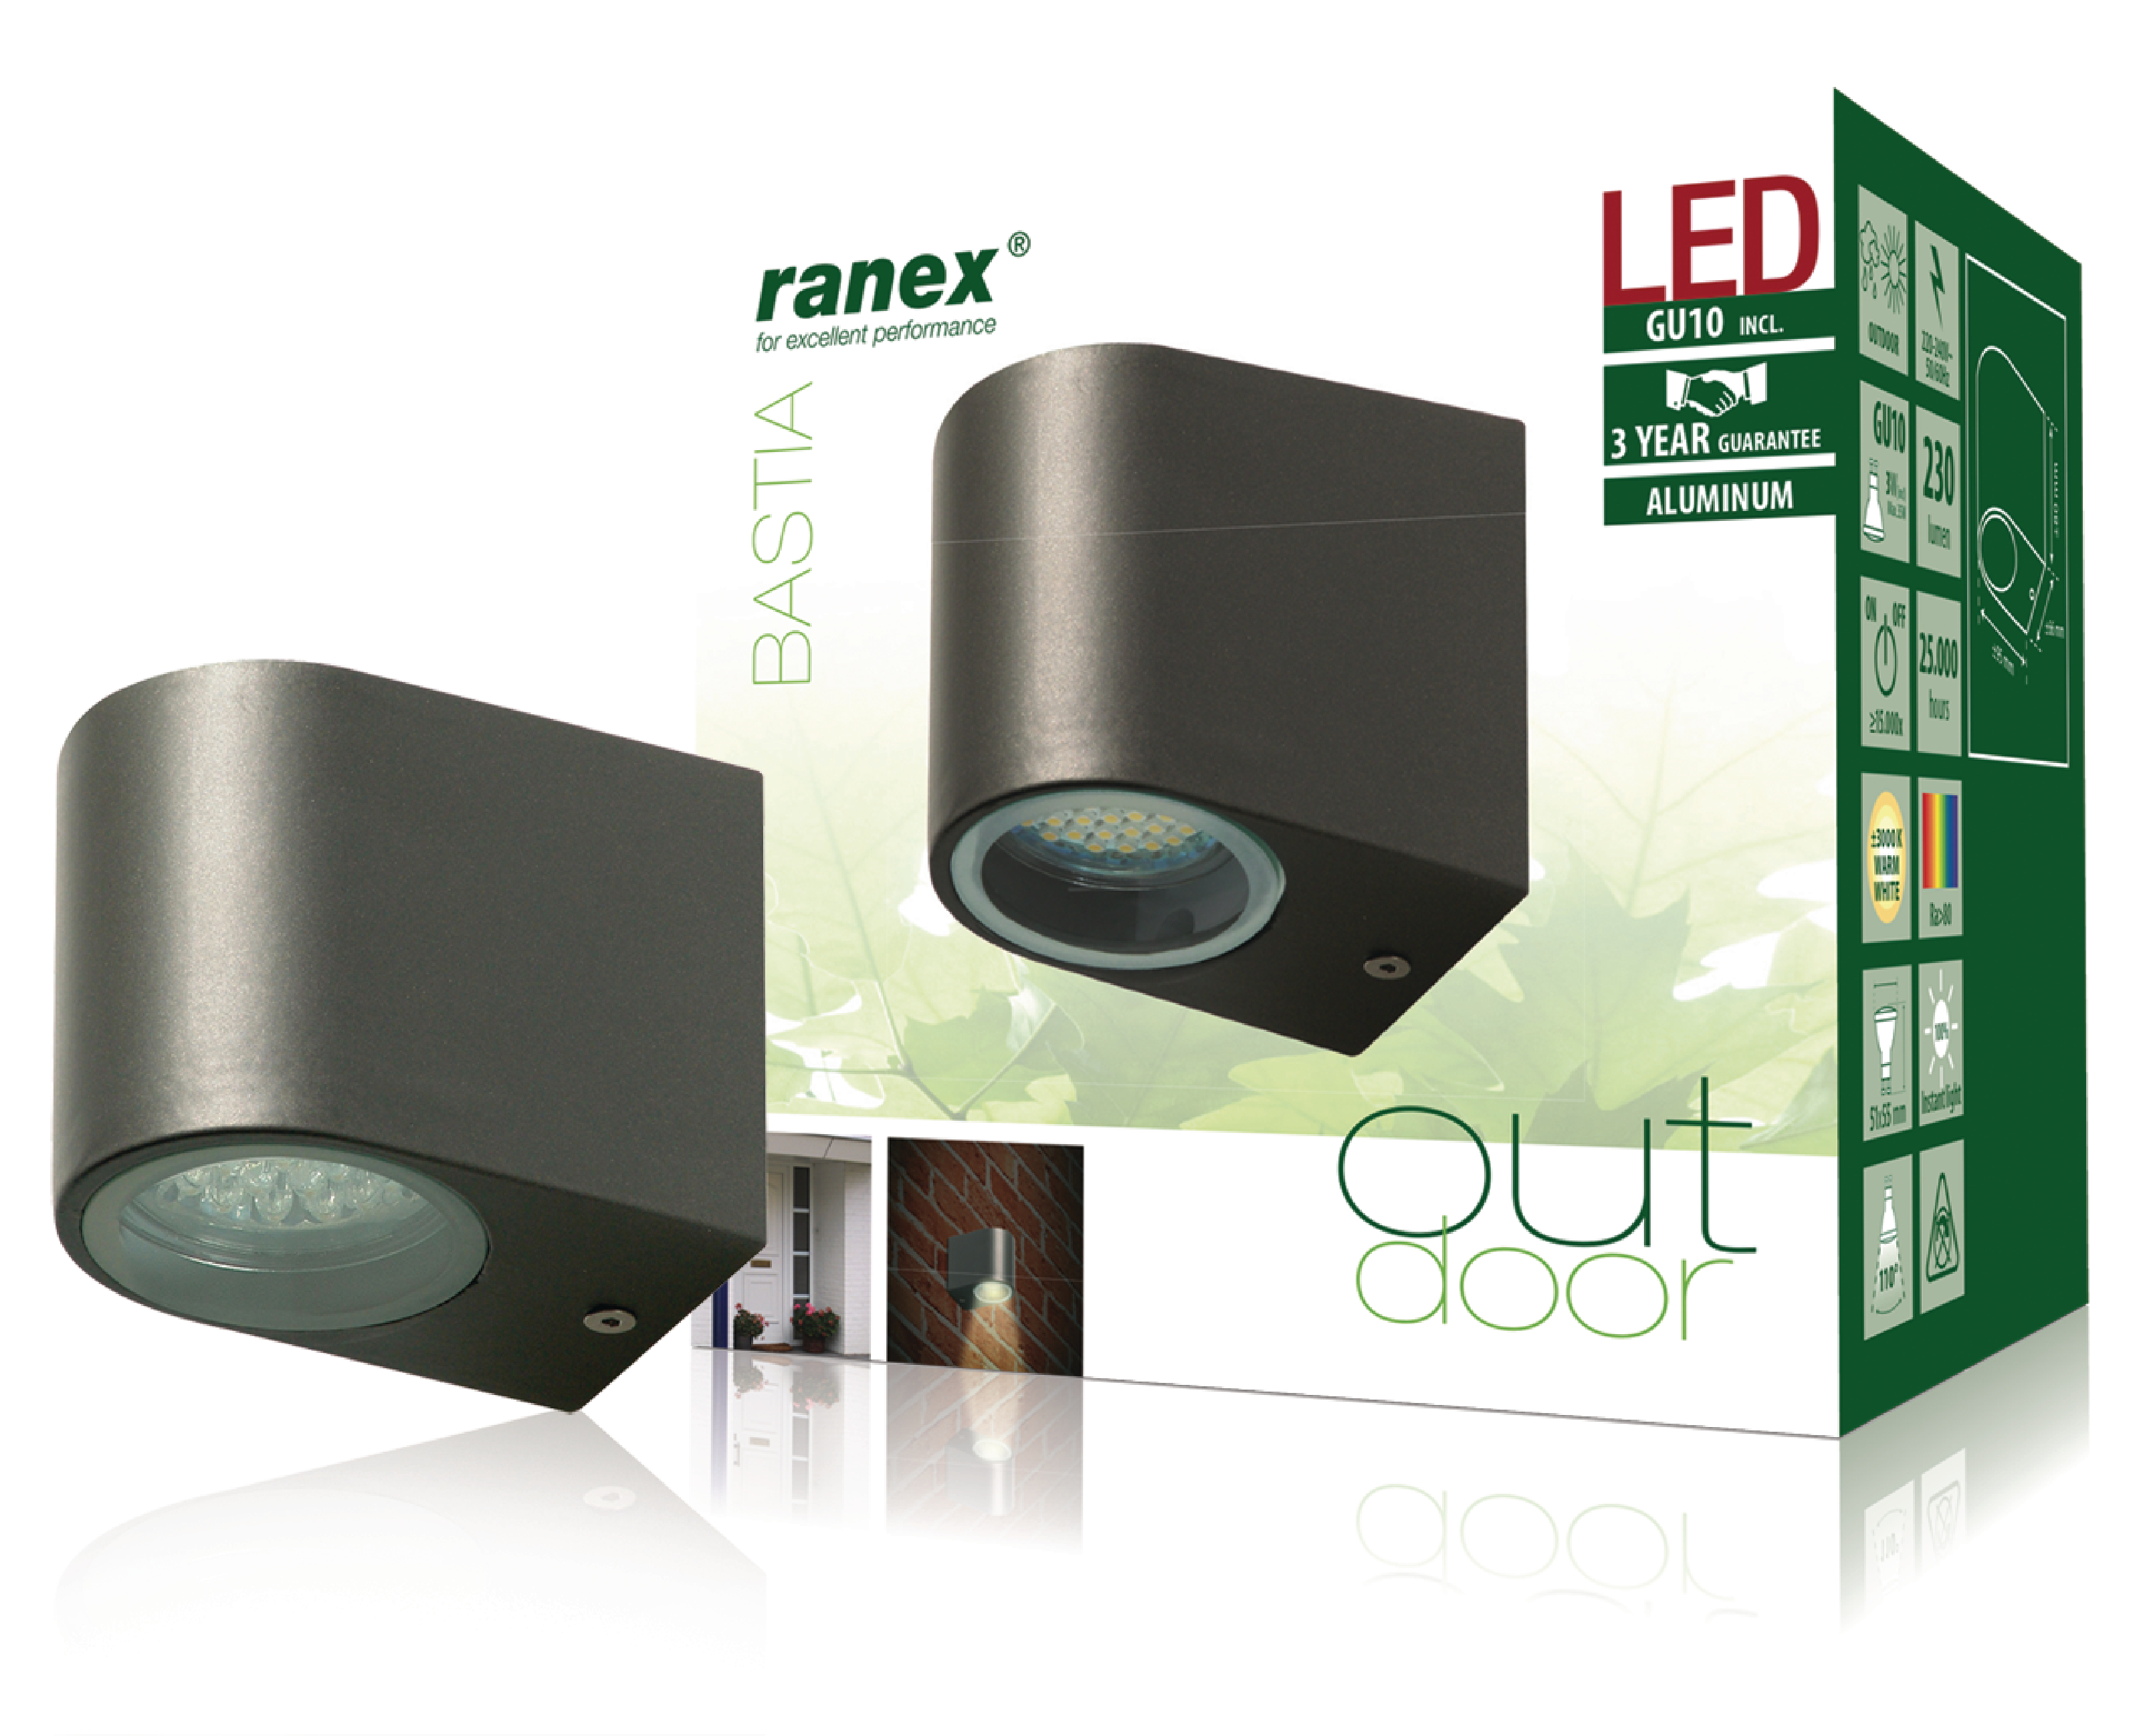 ra 5000332 ranex led outdoor wall light 2 4 w 230 lm. Black Bedroom Furniture Sets. Home Design Ideas